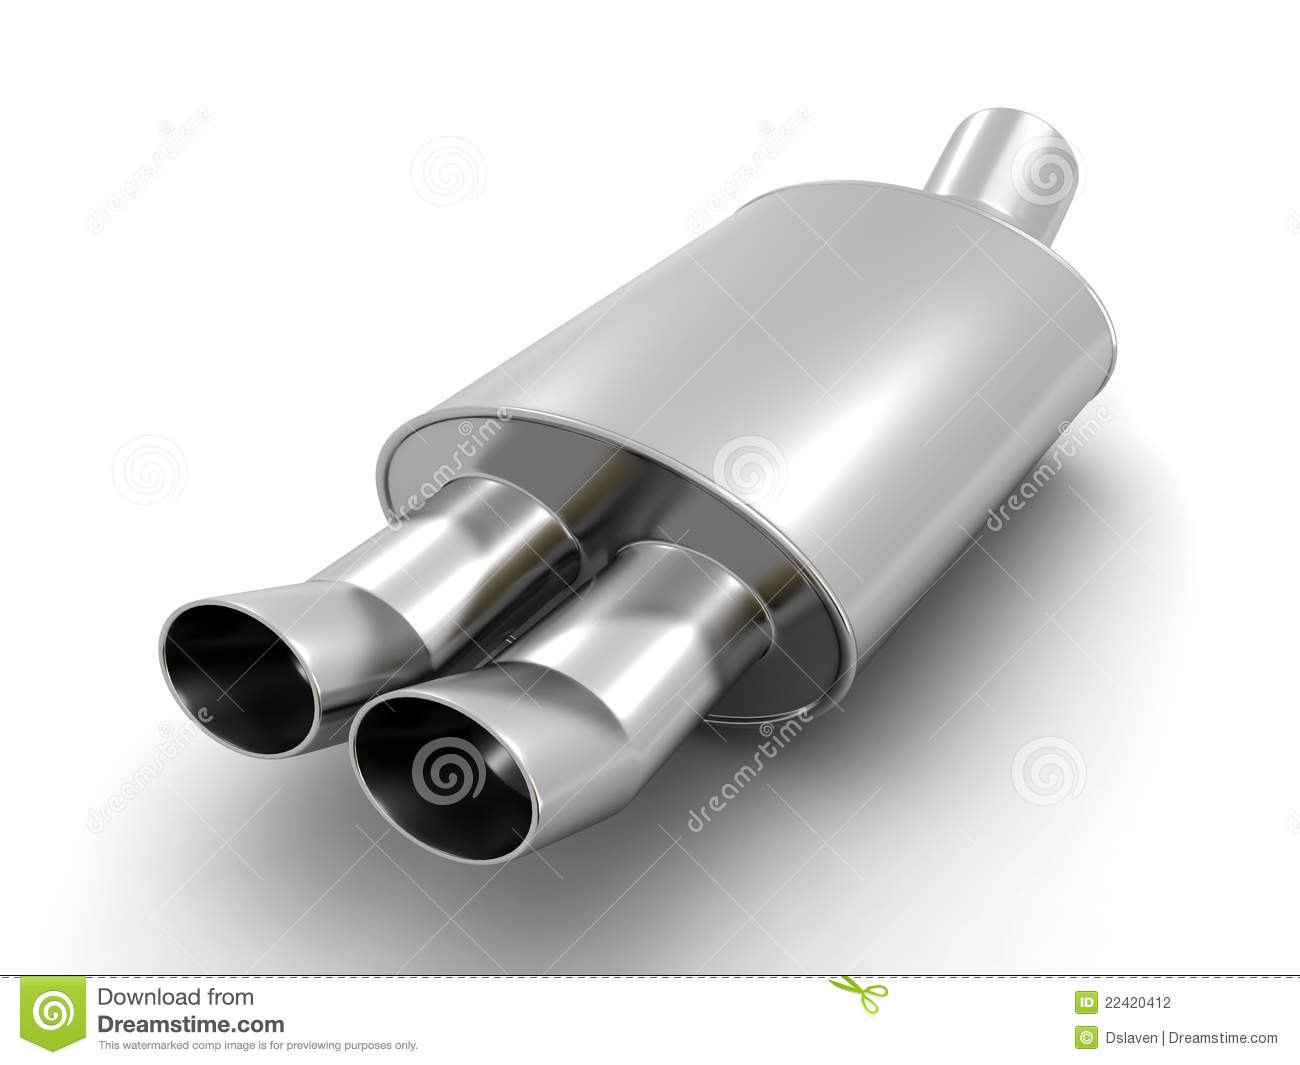 Exhaust stock illustrations 5607 exhaust stock illustrations car exhaust pipe sporty car twin exhaust pipe on a white background 3d render malvernweather Gallery